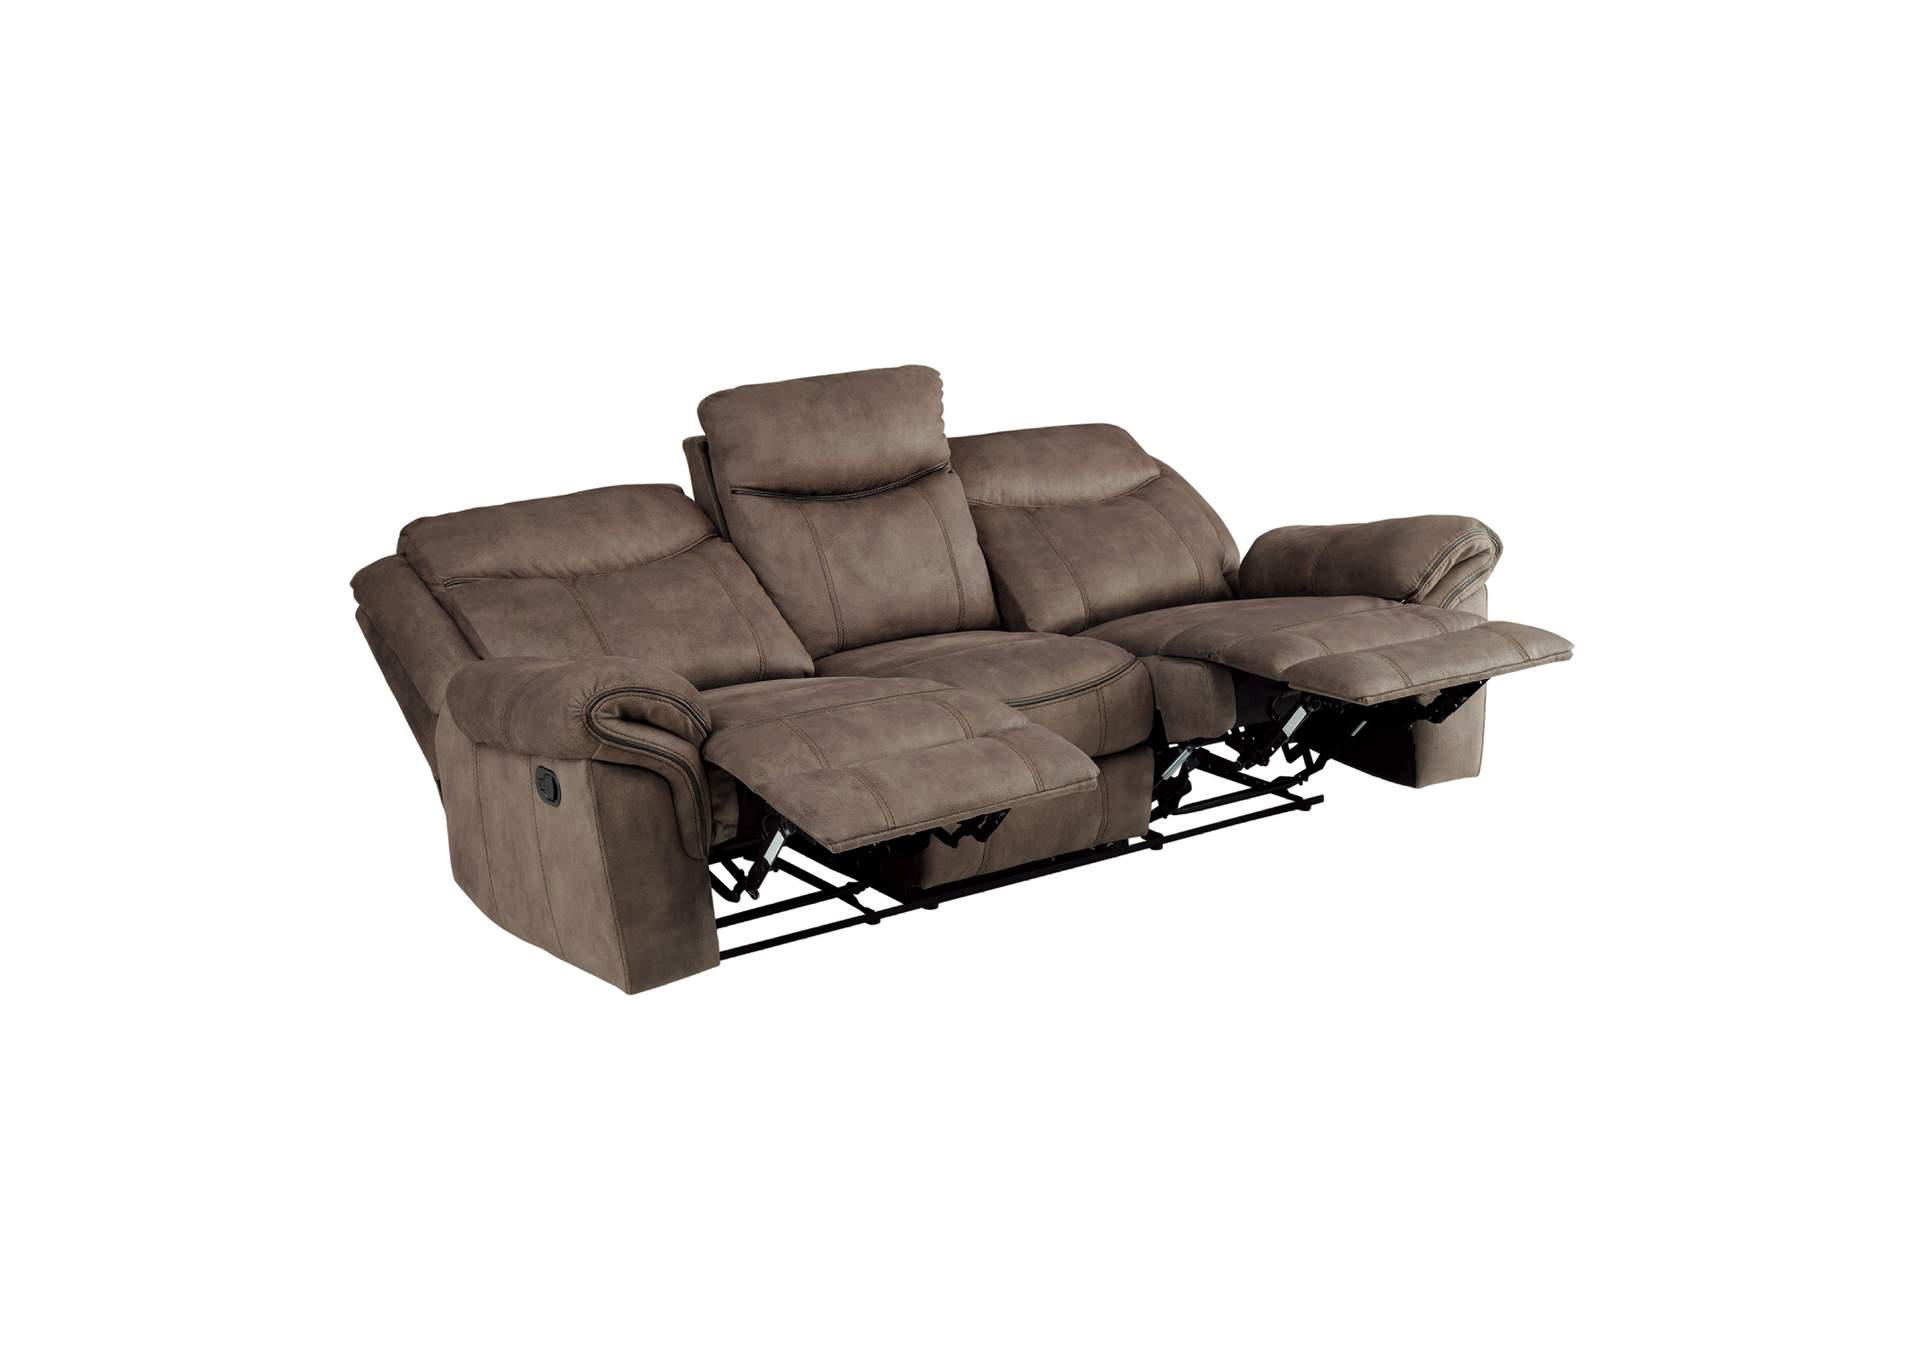 Brown Double Reclining Sofa With Center Drop Down Cup Holders Receptacles Hidden Drawer And Usb Ports The Furniture Loft